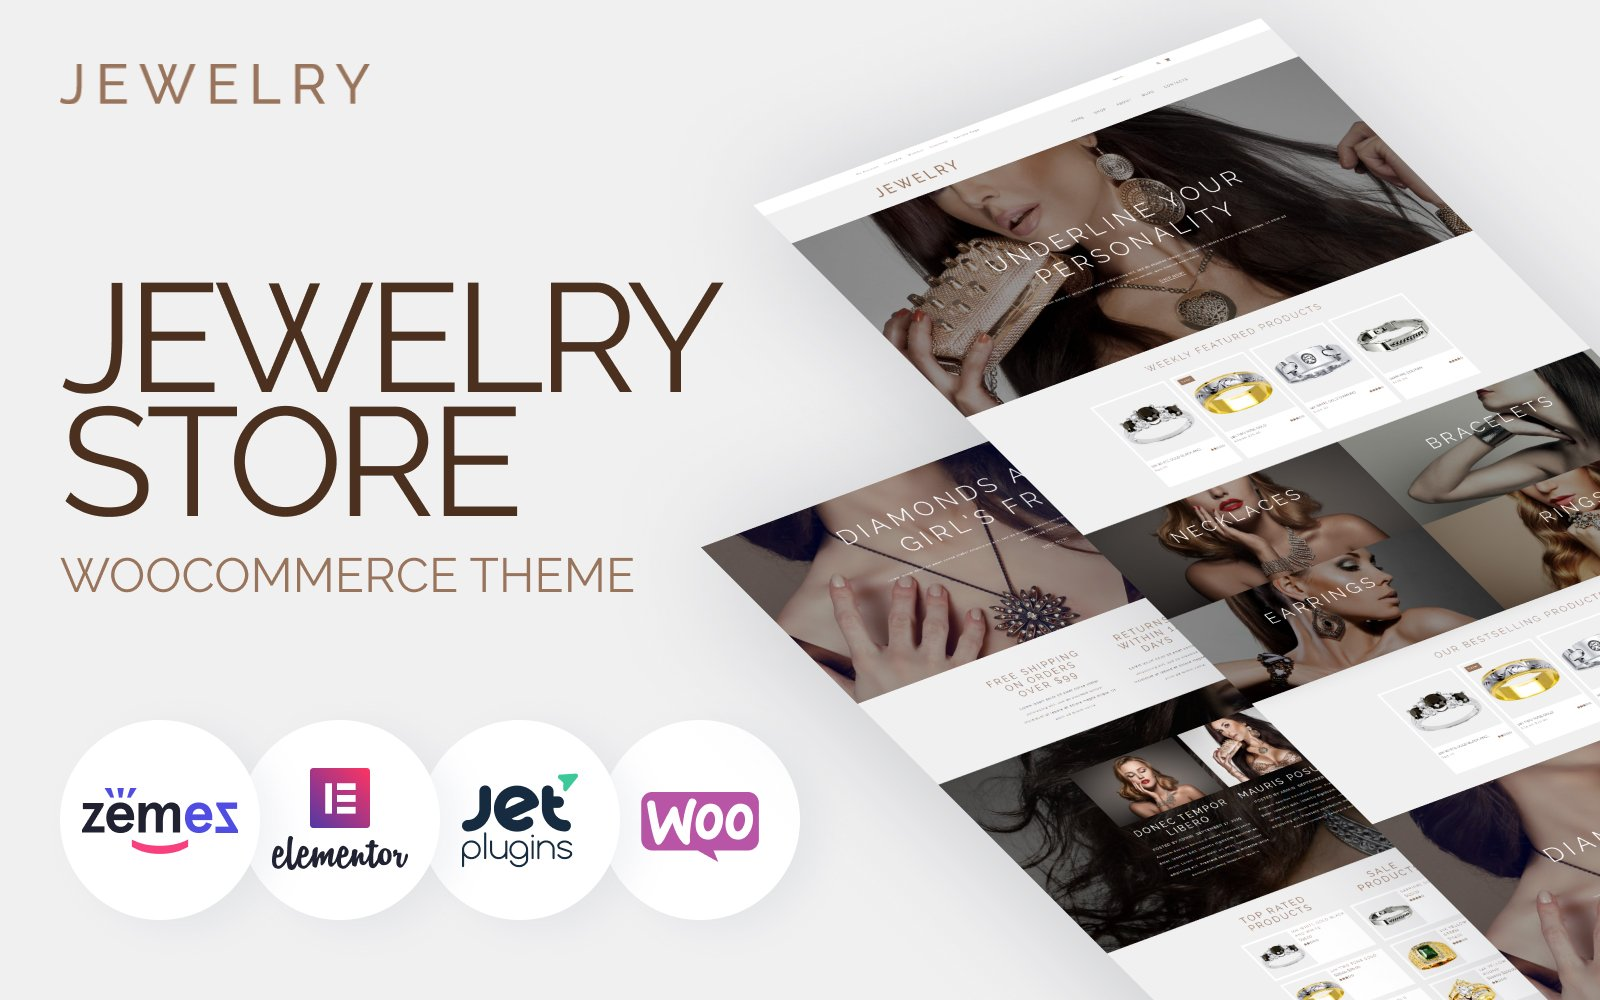 Responsivt Jewelry - Jewelry Website Design Template for Online Shops WooCommerce-tema #53421